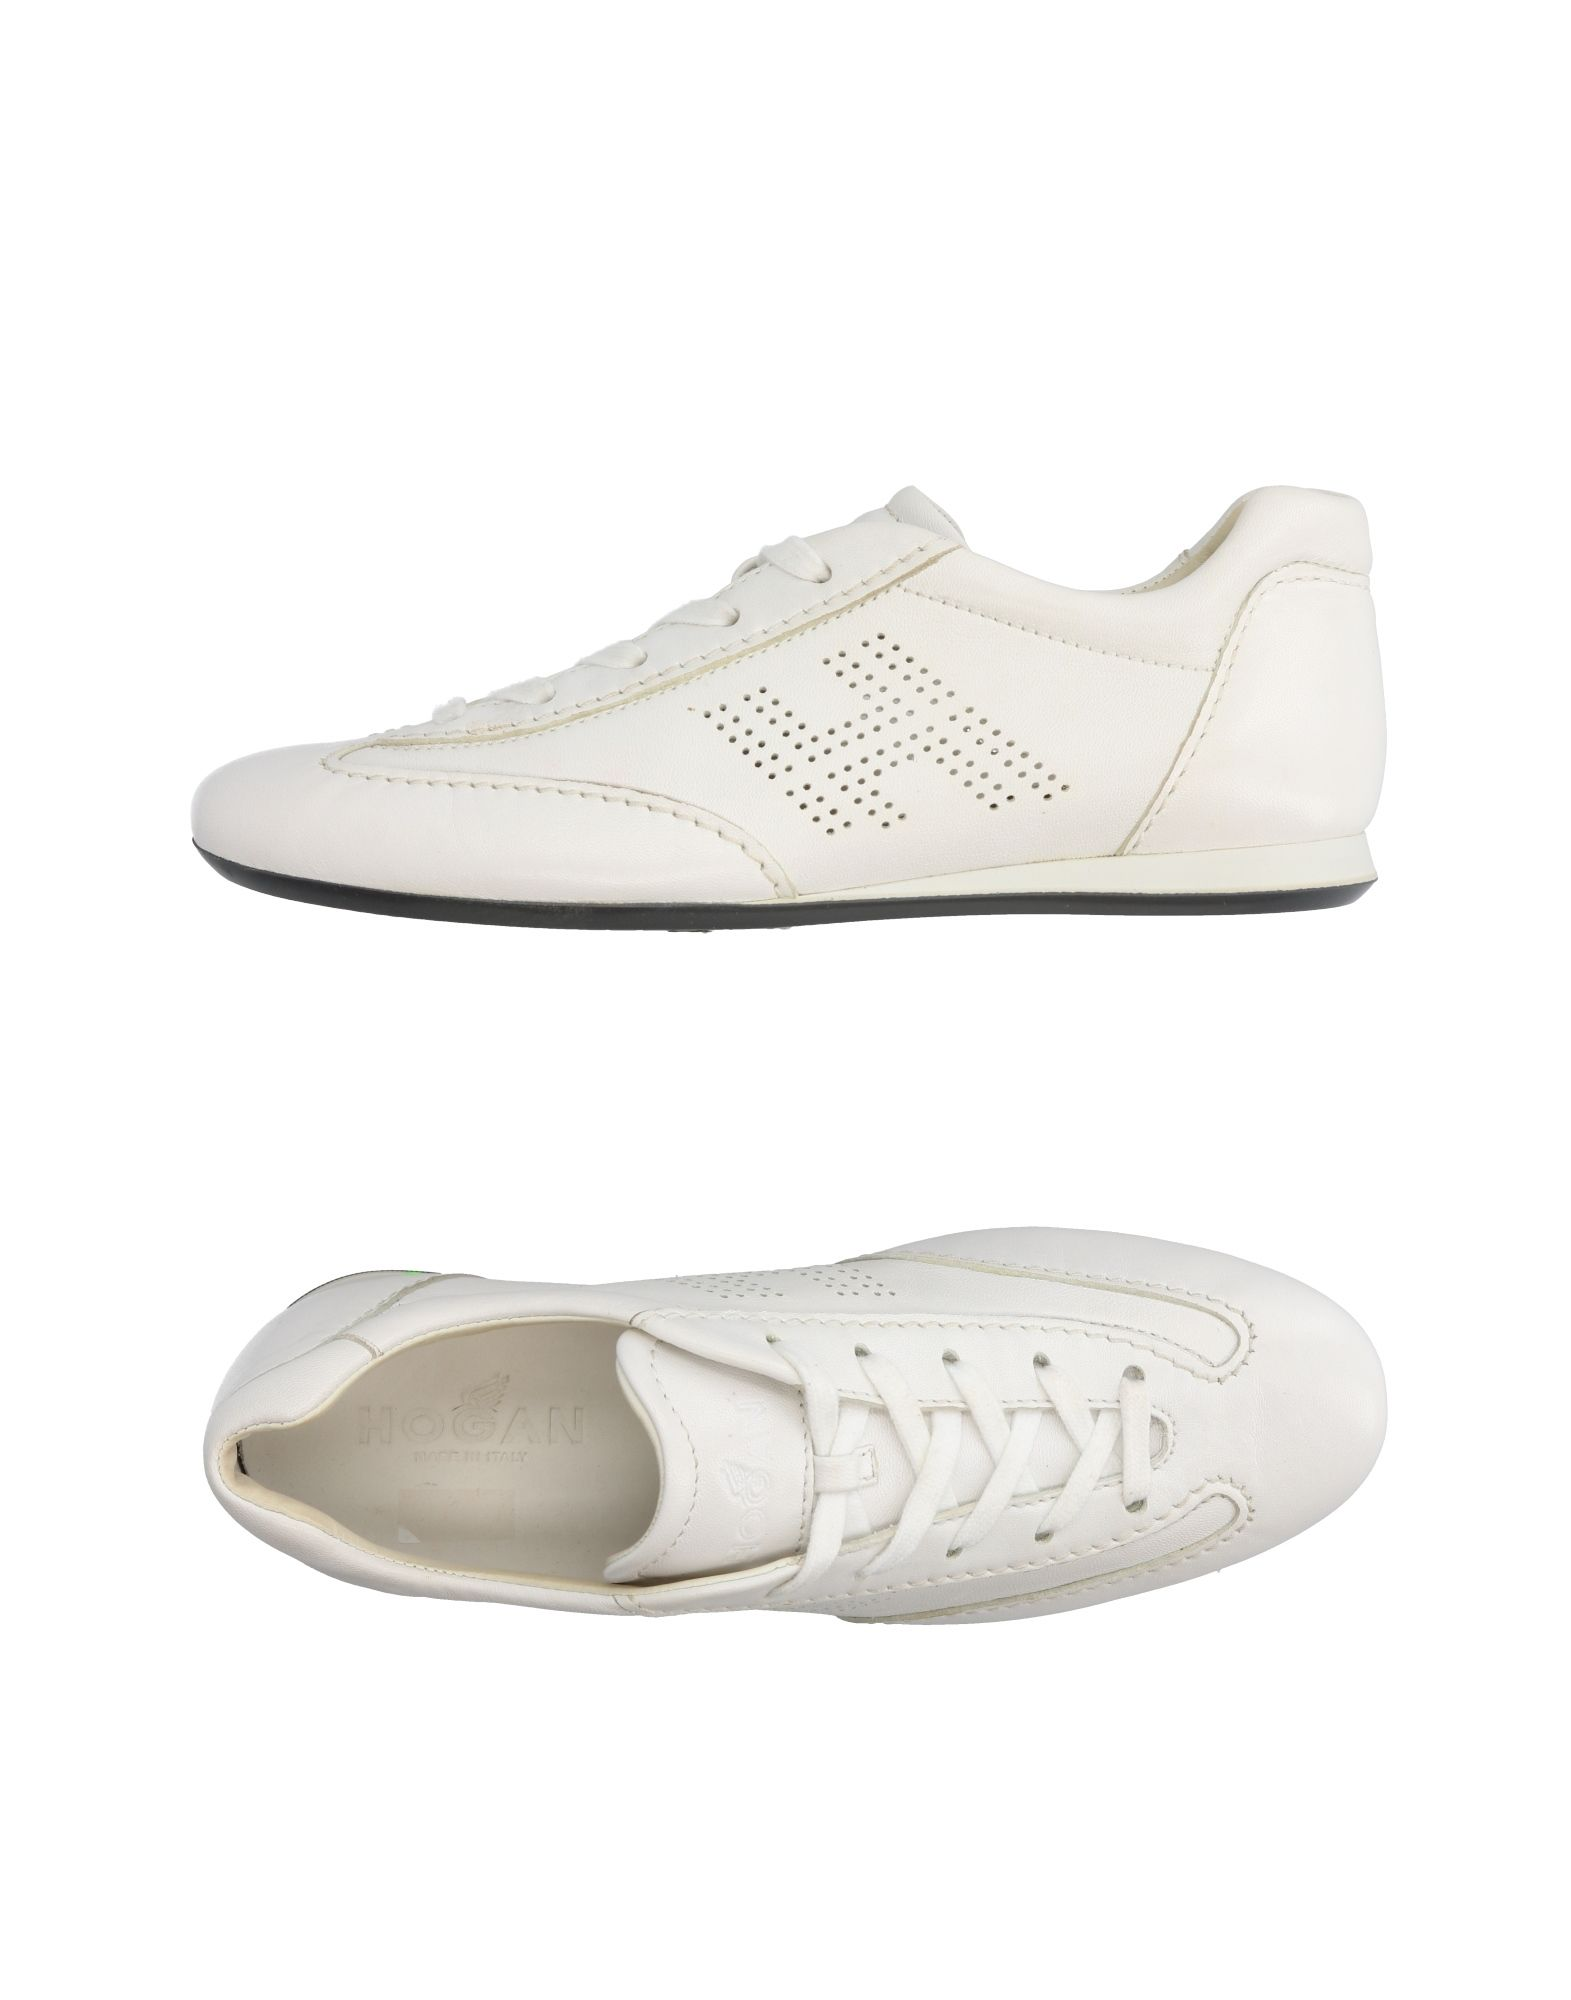 Hogan Sneakers - Women Hogan Sneakers Sneakers Sneakers online on  Canada - 11306083MF 31f411